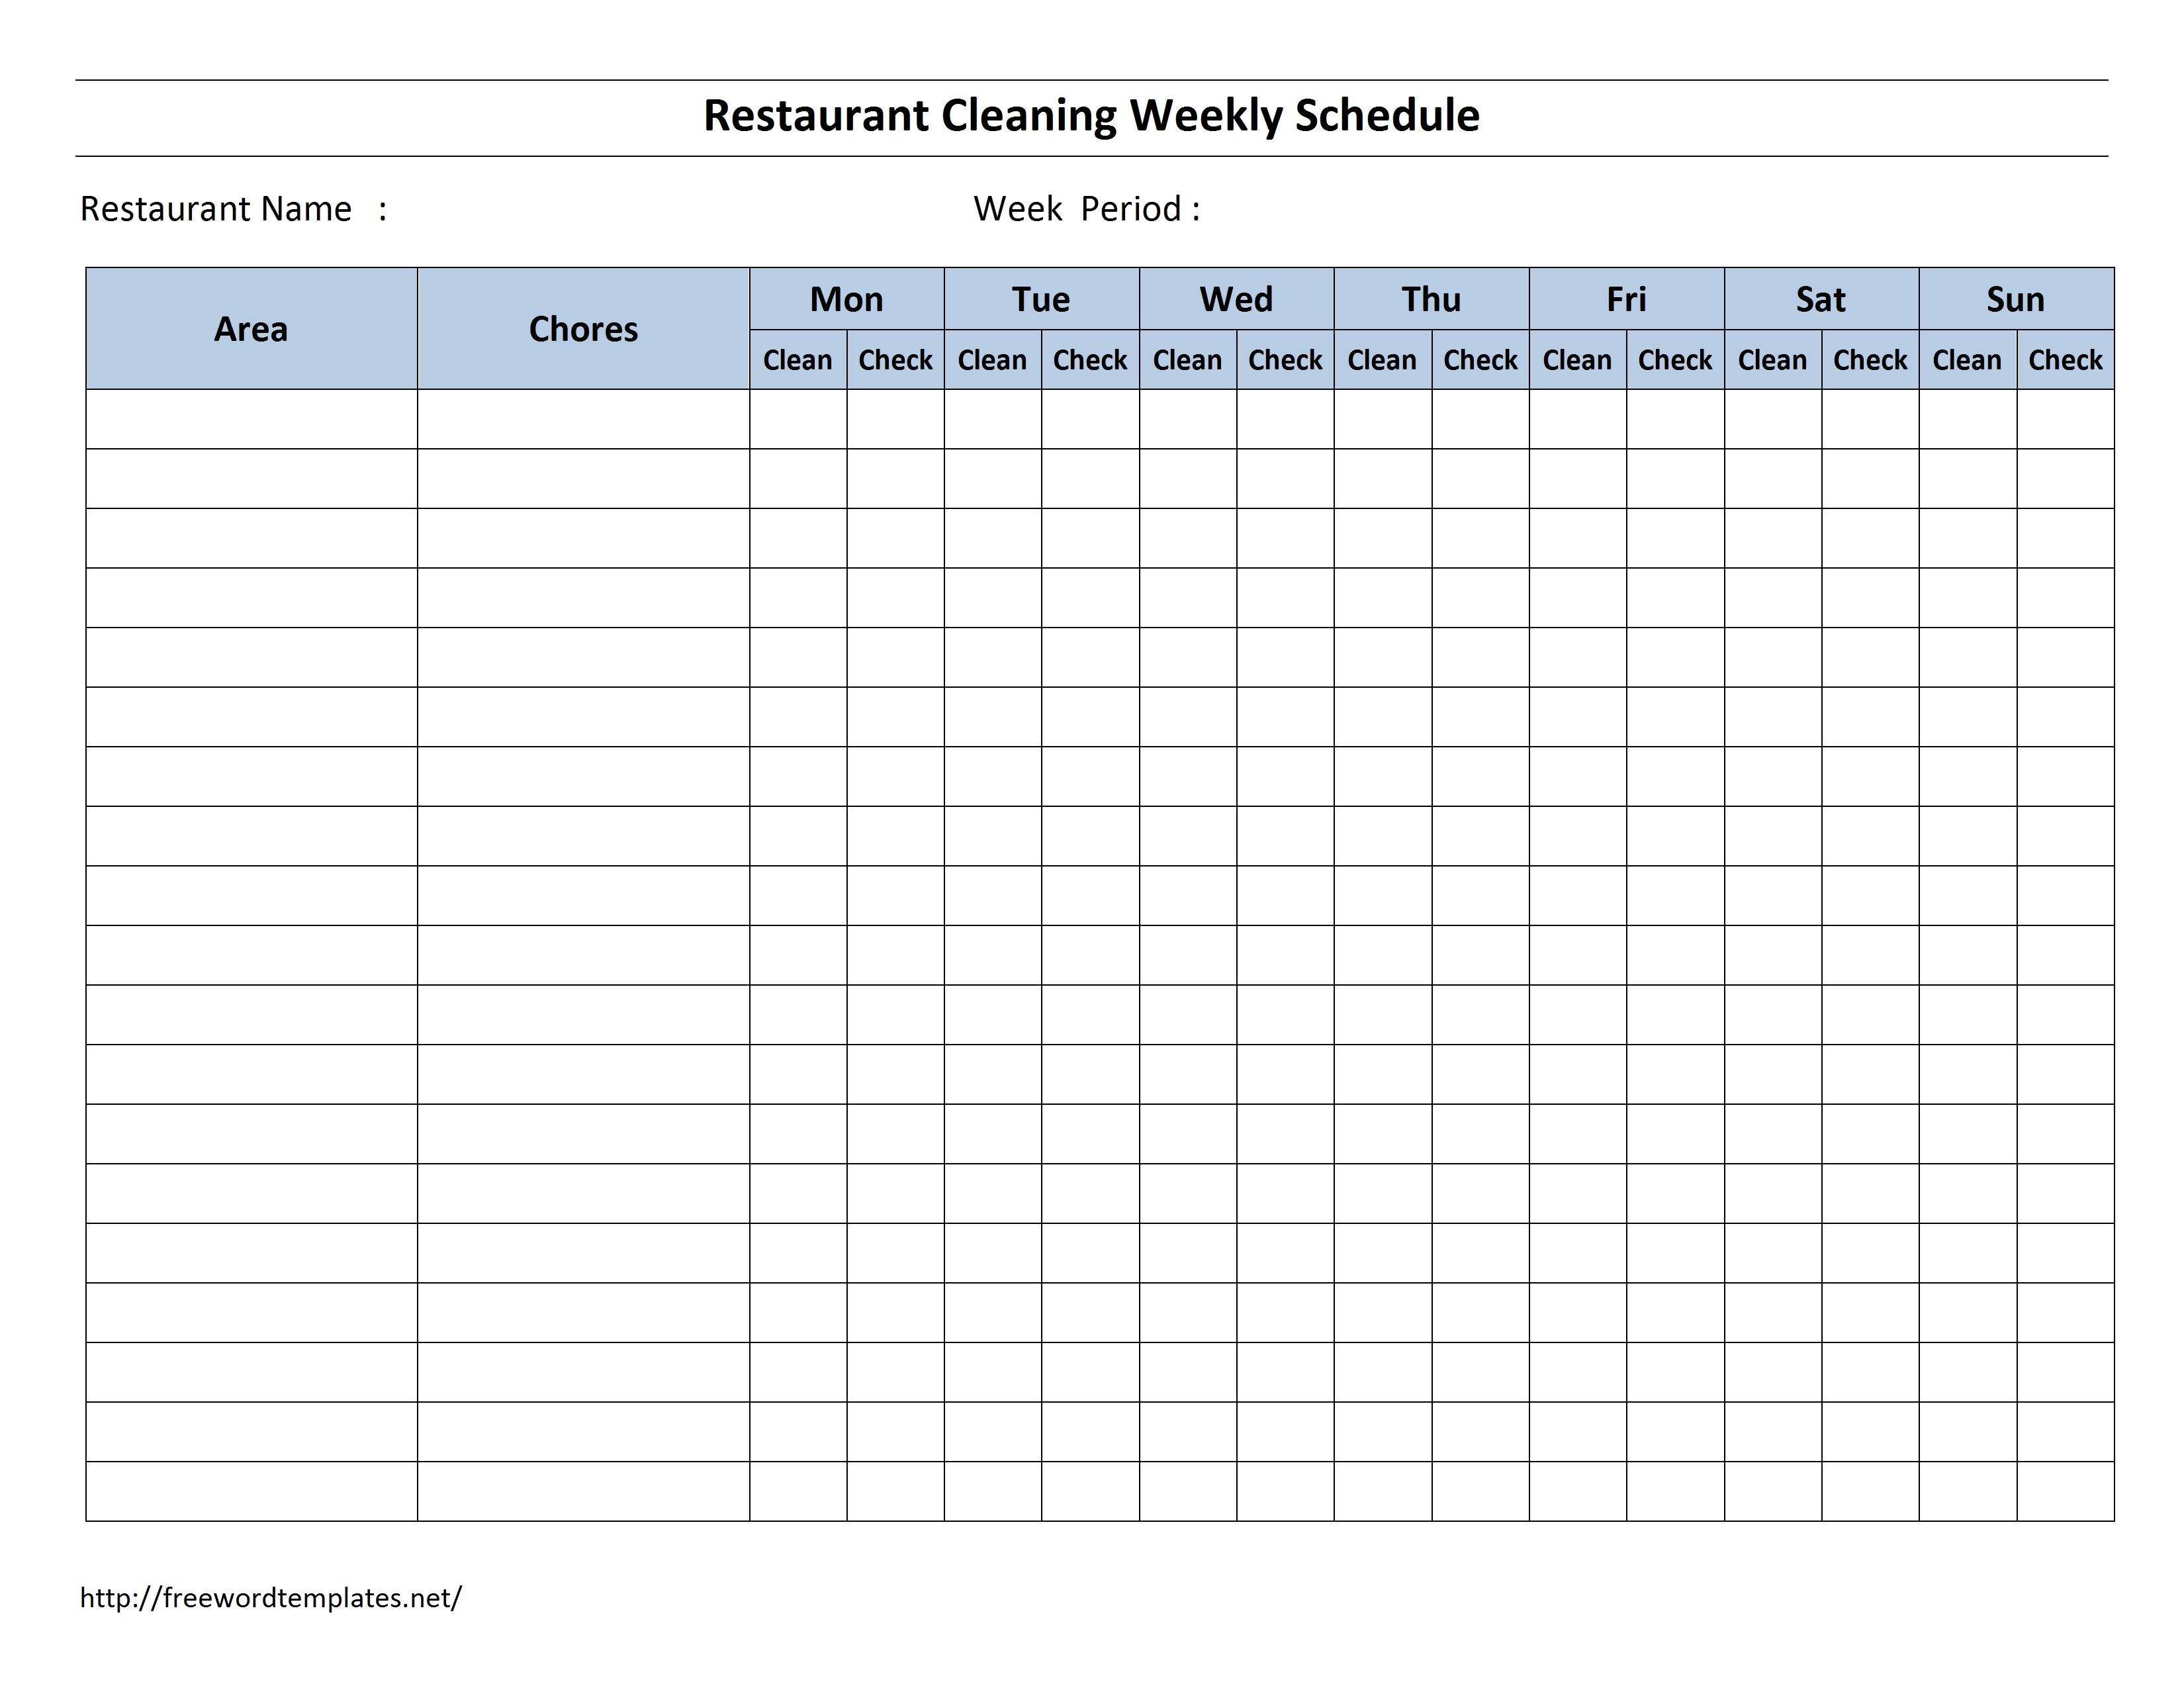 Weekly Cleaning Schedule Template In